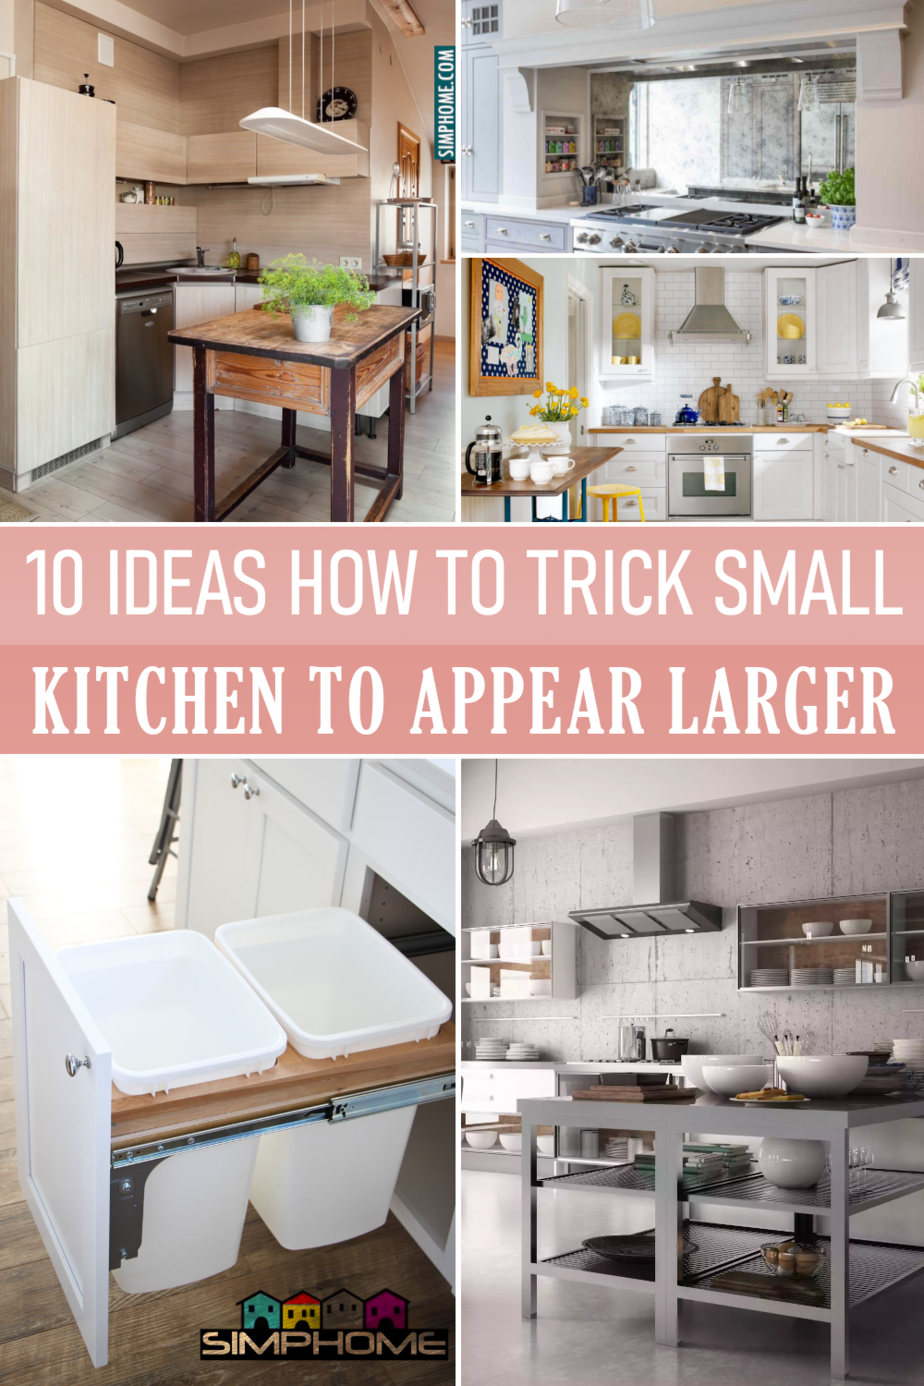 10 Tips How to turn Small Kitchen Looks Larger via Simphome.comFeatured Image